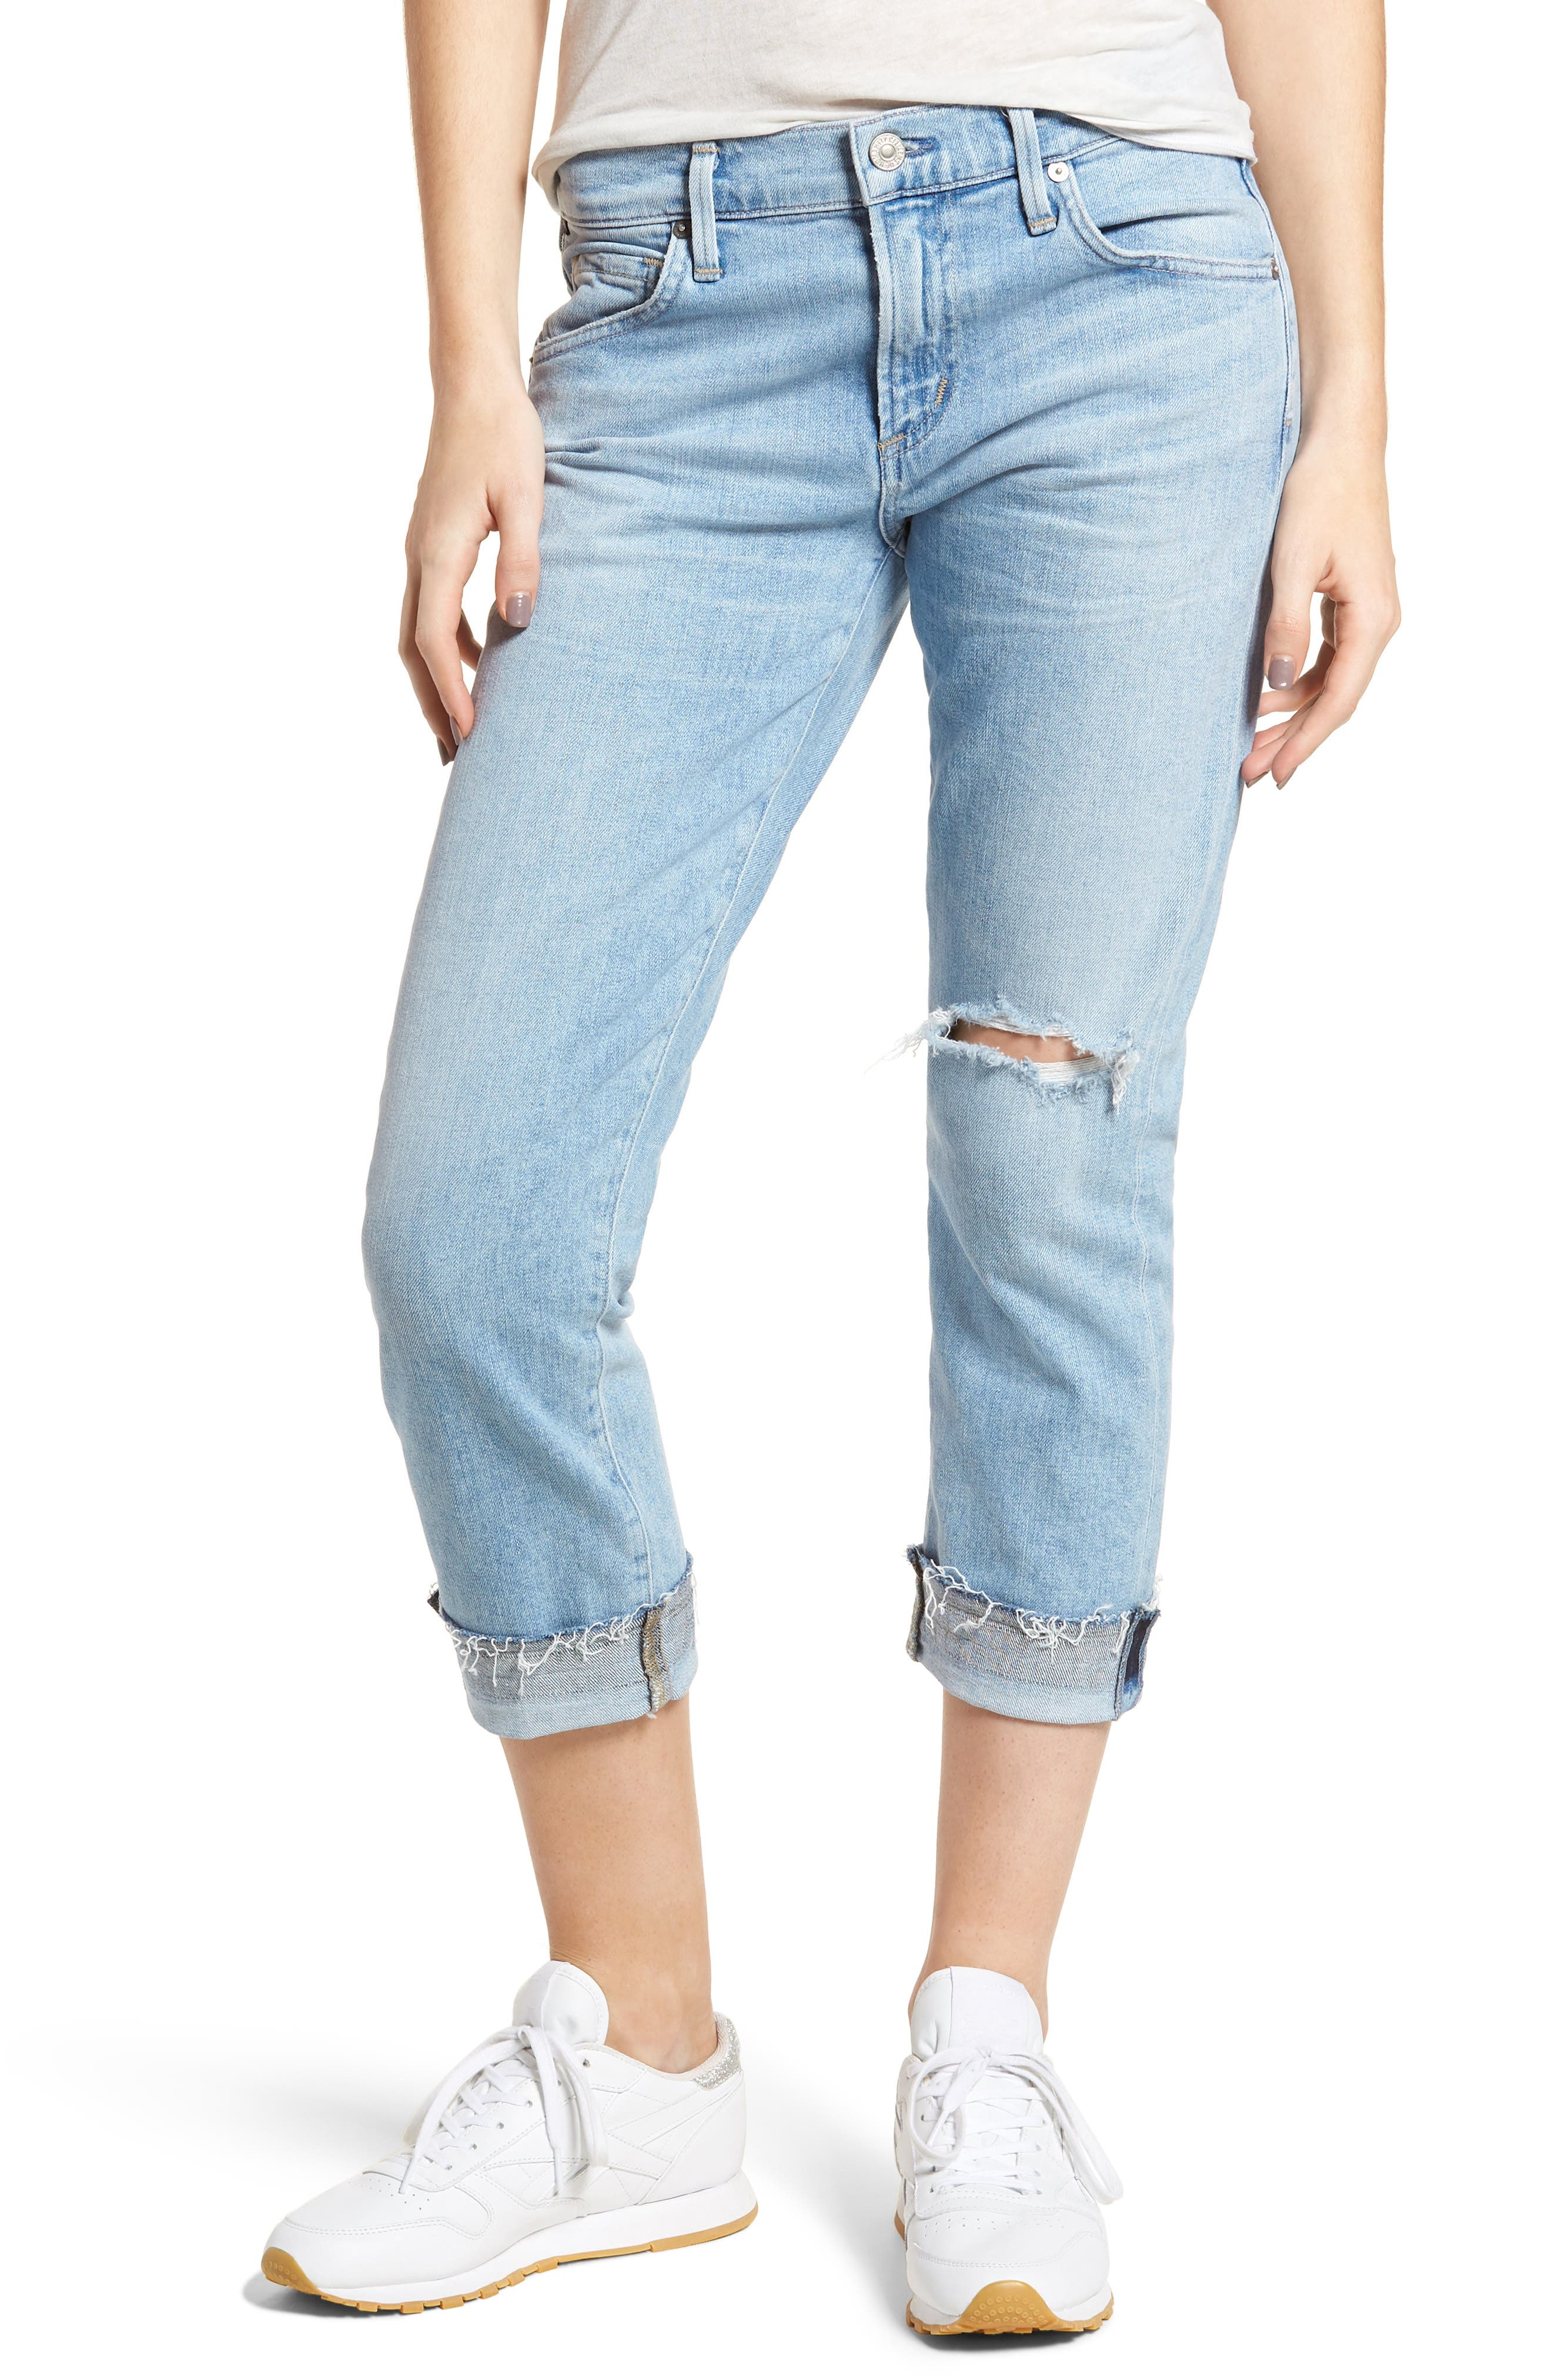 CITIZENS OF HUMANITY Emerson Ripped Crop Slim Boyfriend Jeans, Main, color, 455